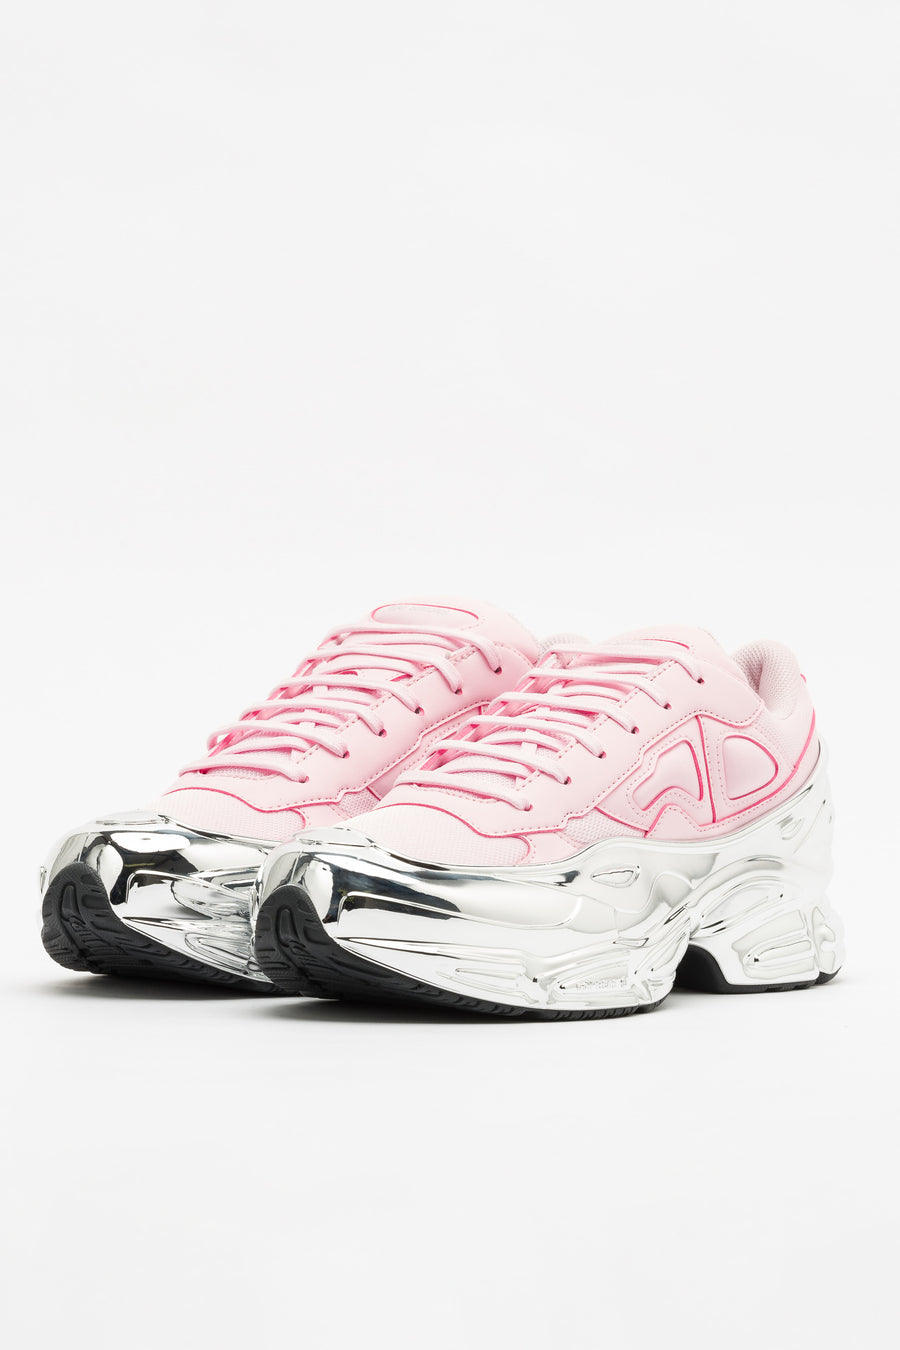 adidas RS Ozweego in Pink/Silver Metallic - Notre